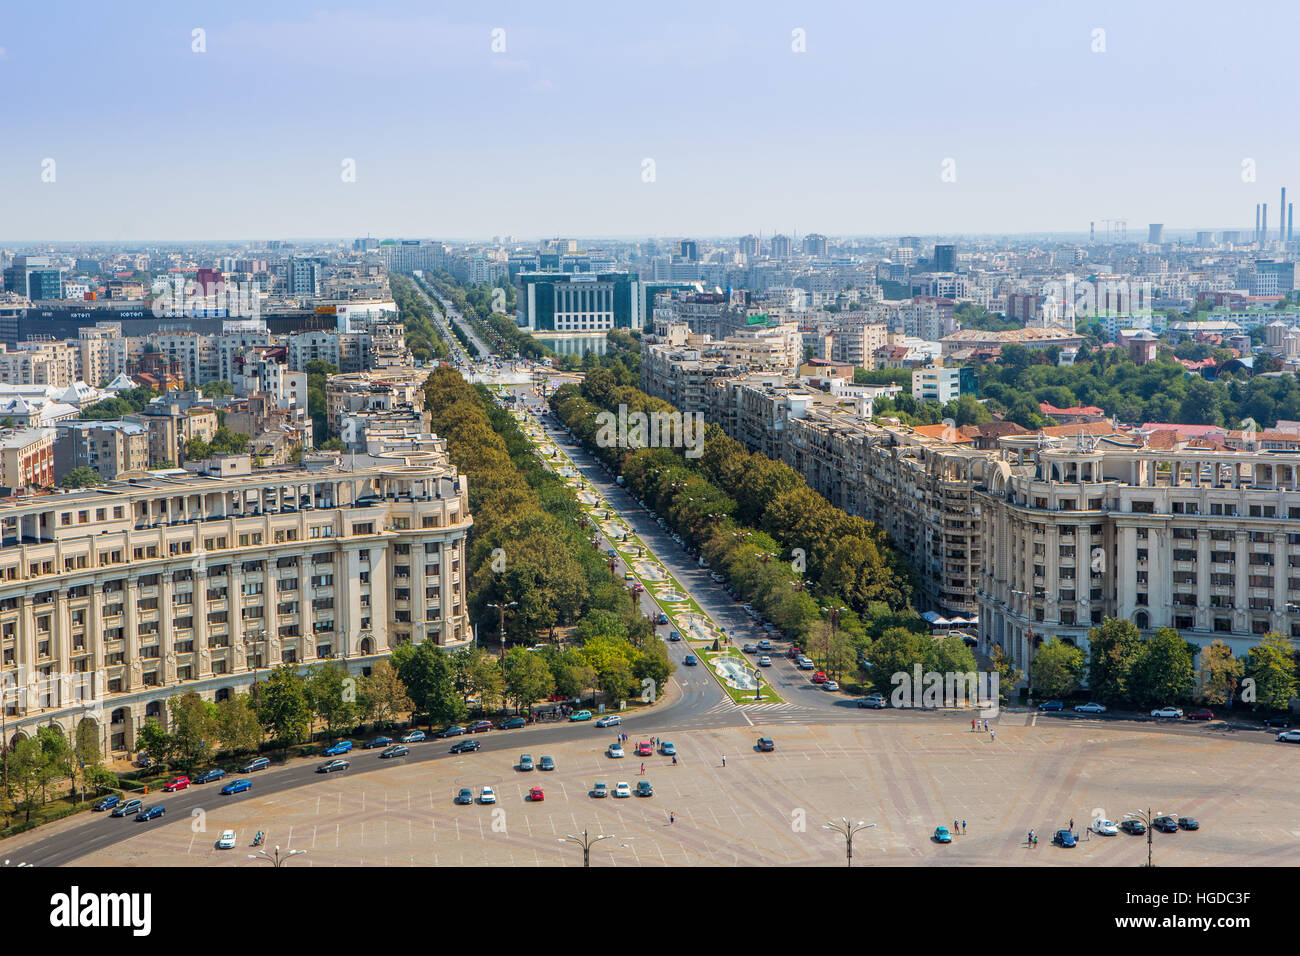 Romania, Bucharest City, Unirii Boulevard from Parliament building - Stock Image